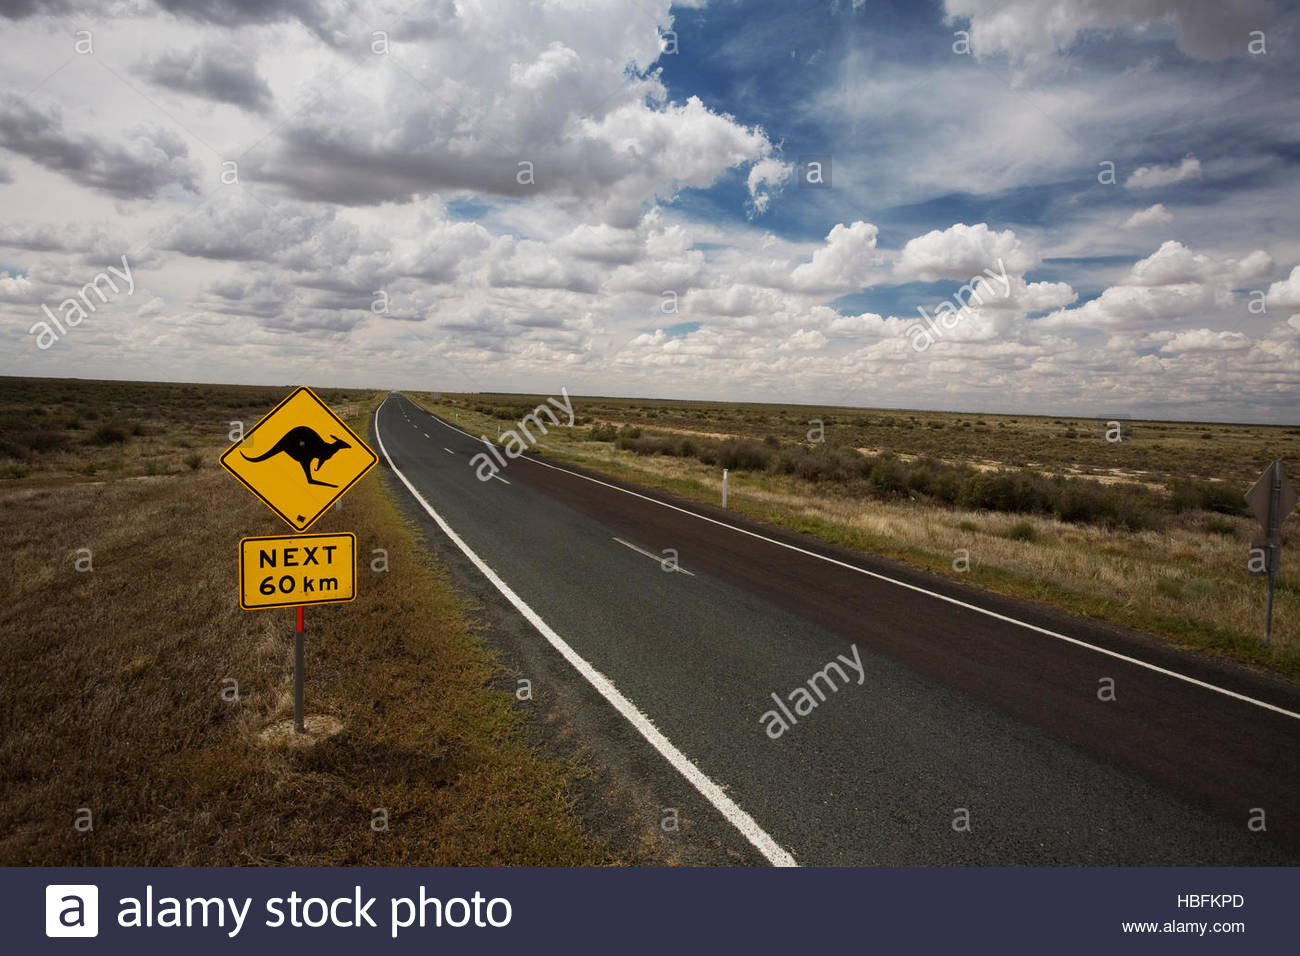 A kangaroo crossing sign on the side of a road. - Stock Image